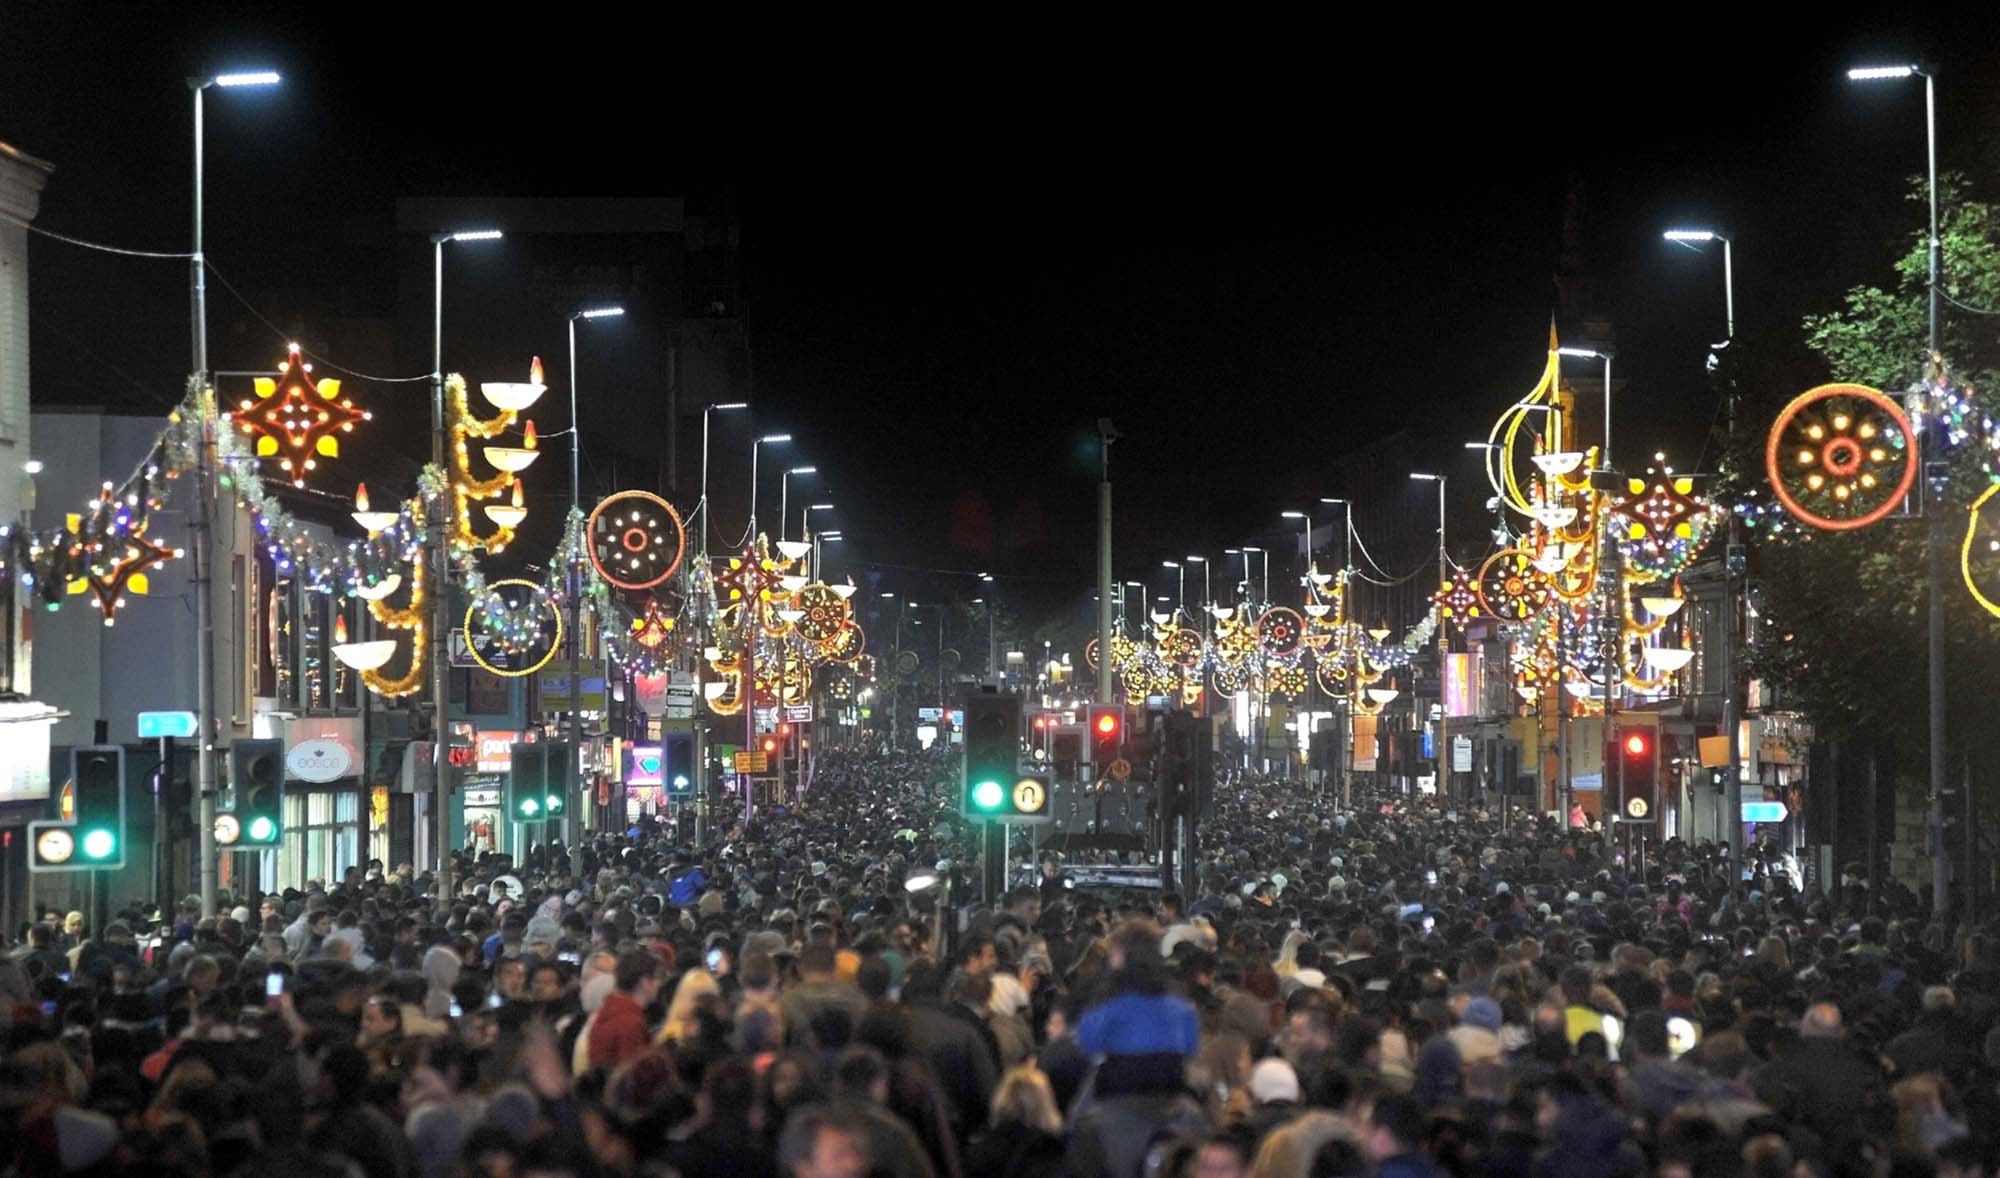 The Leicester Diwali celebrations are the largest outside of India attracting residents and tourists from all over the UK -